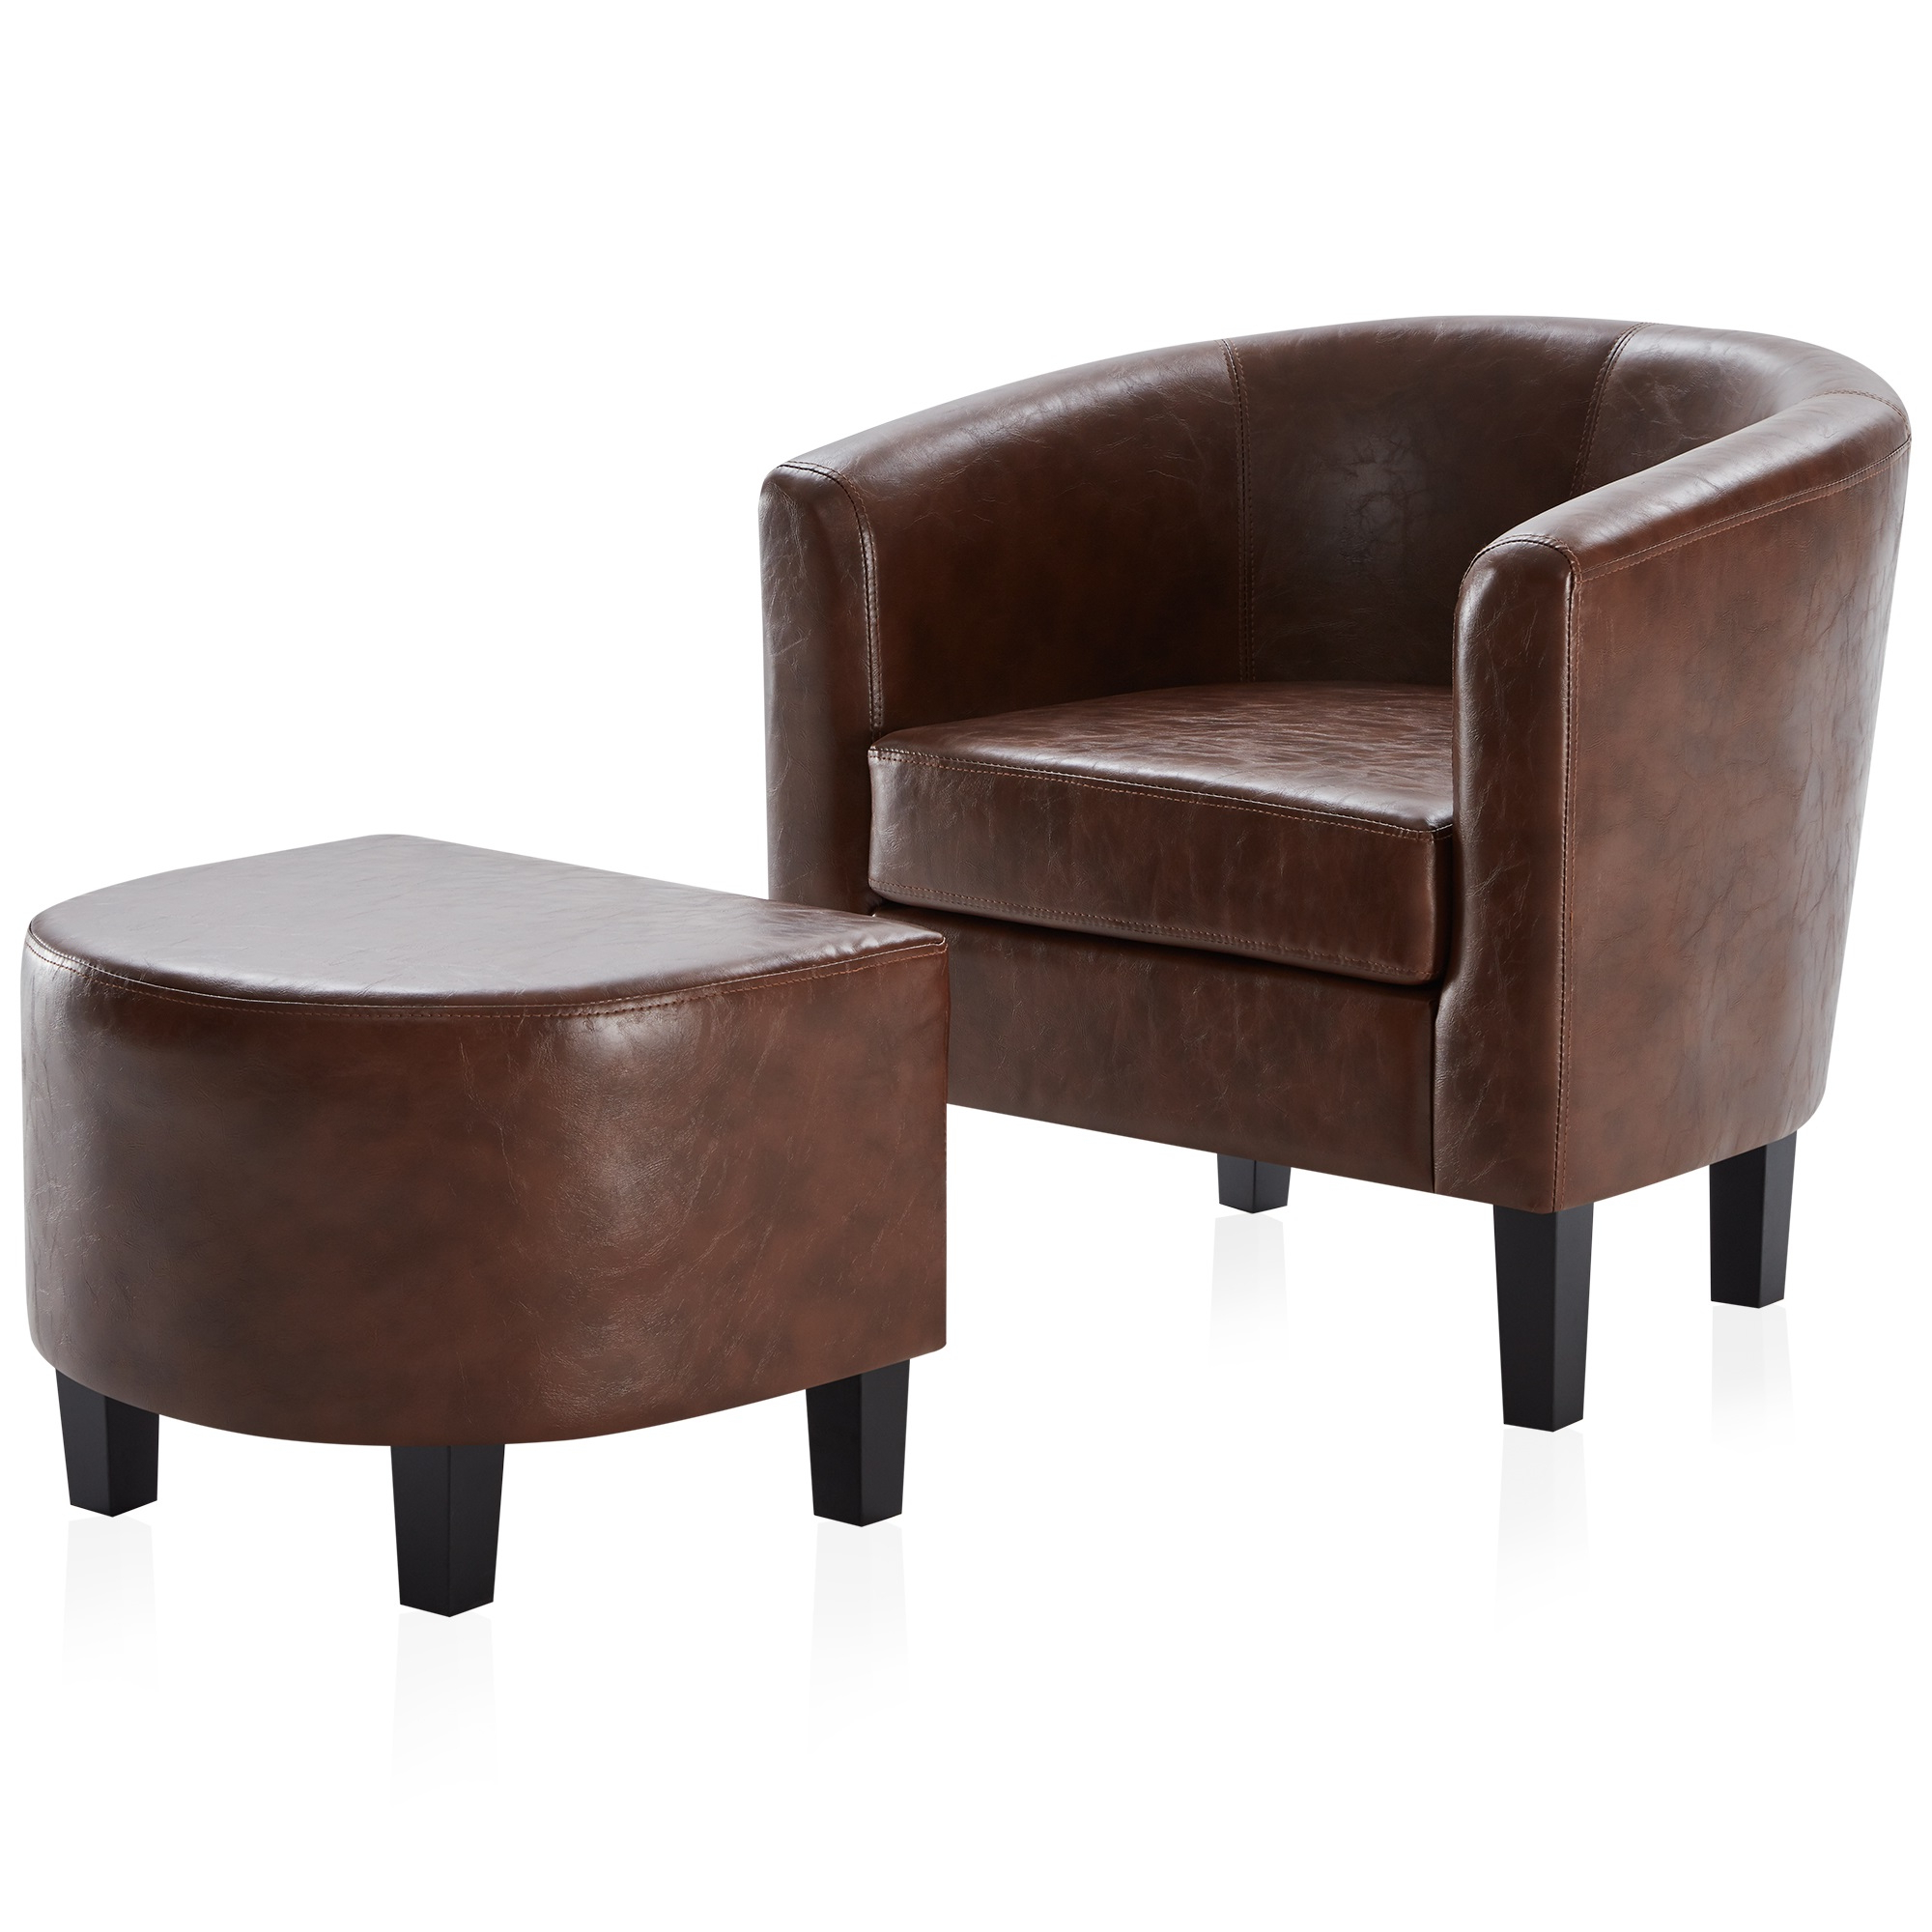 Faux Leather Barrel Chair And Ottoman Sets With Widely Used Belleze Modern Barrel Accent Chair With Ottoman Linen/ Faux Leather Round Arms Footrest Set – Walmart (View 5 of 20)